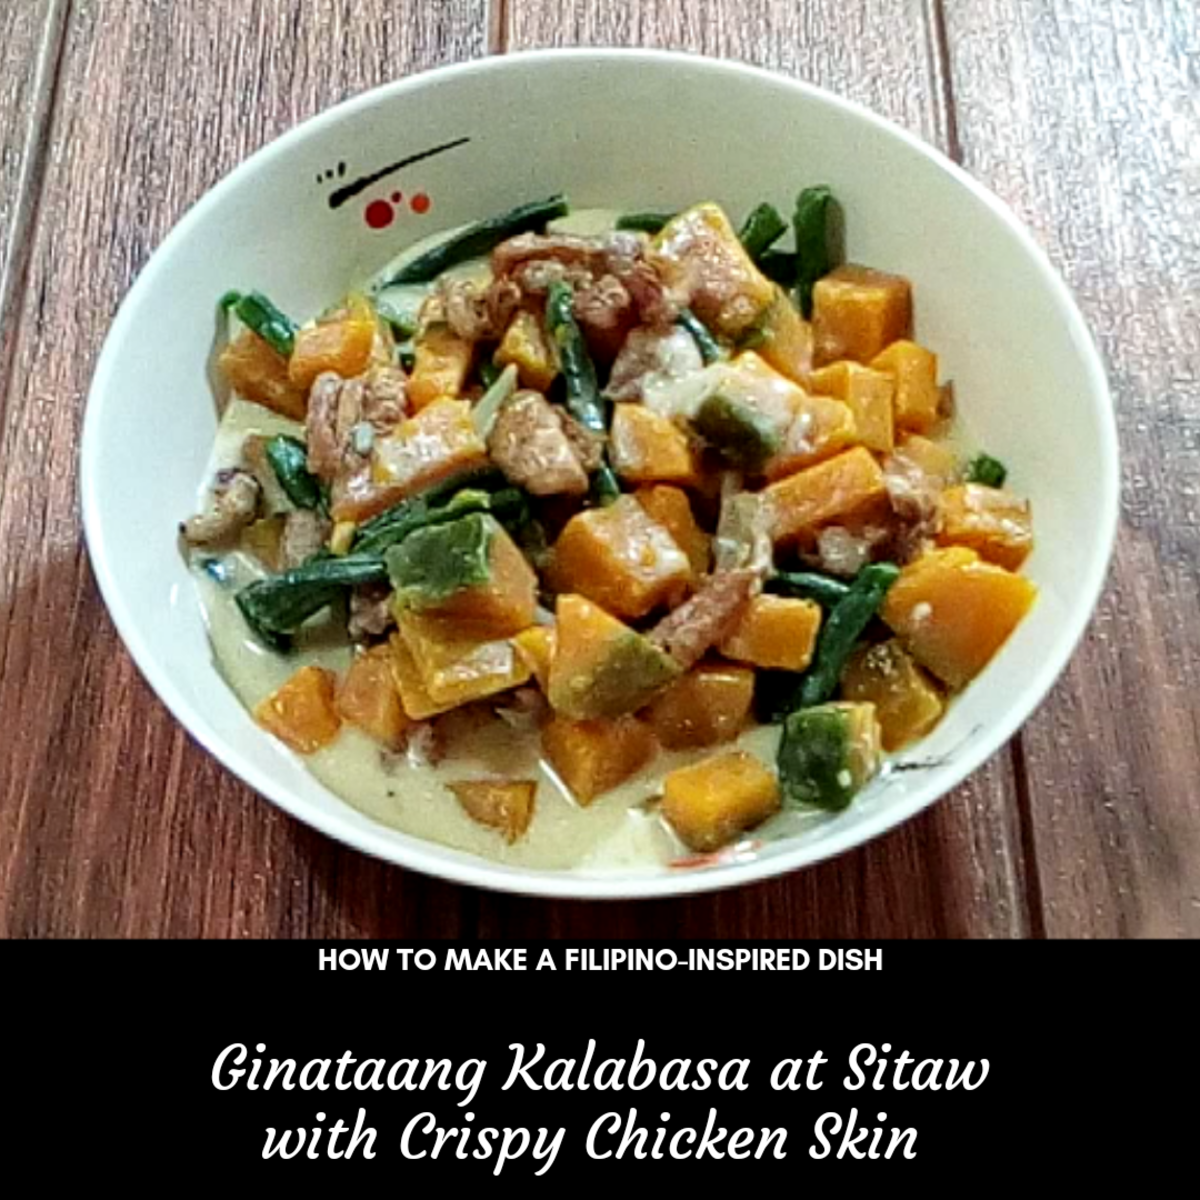 How to Make Ginataang Kalabasa at Sitaw with Crispy Chicken Skin: A Filipino-Inspired Dish